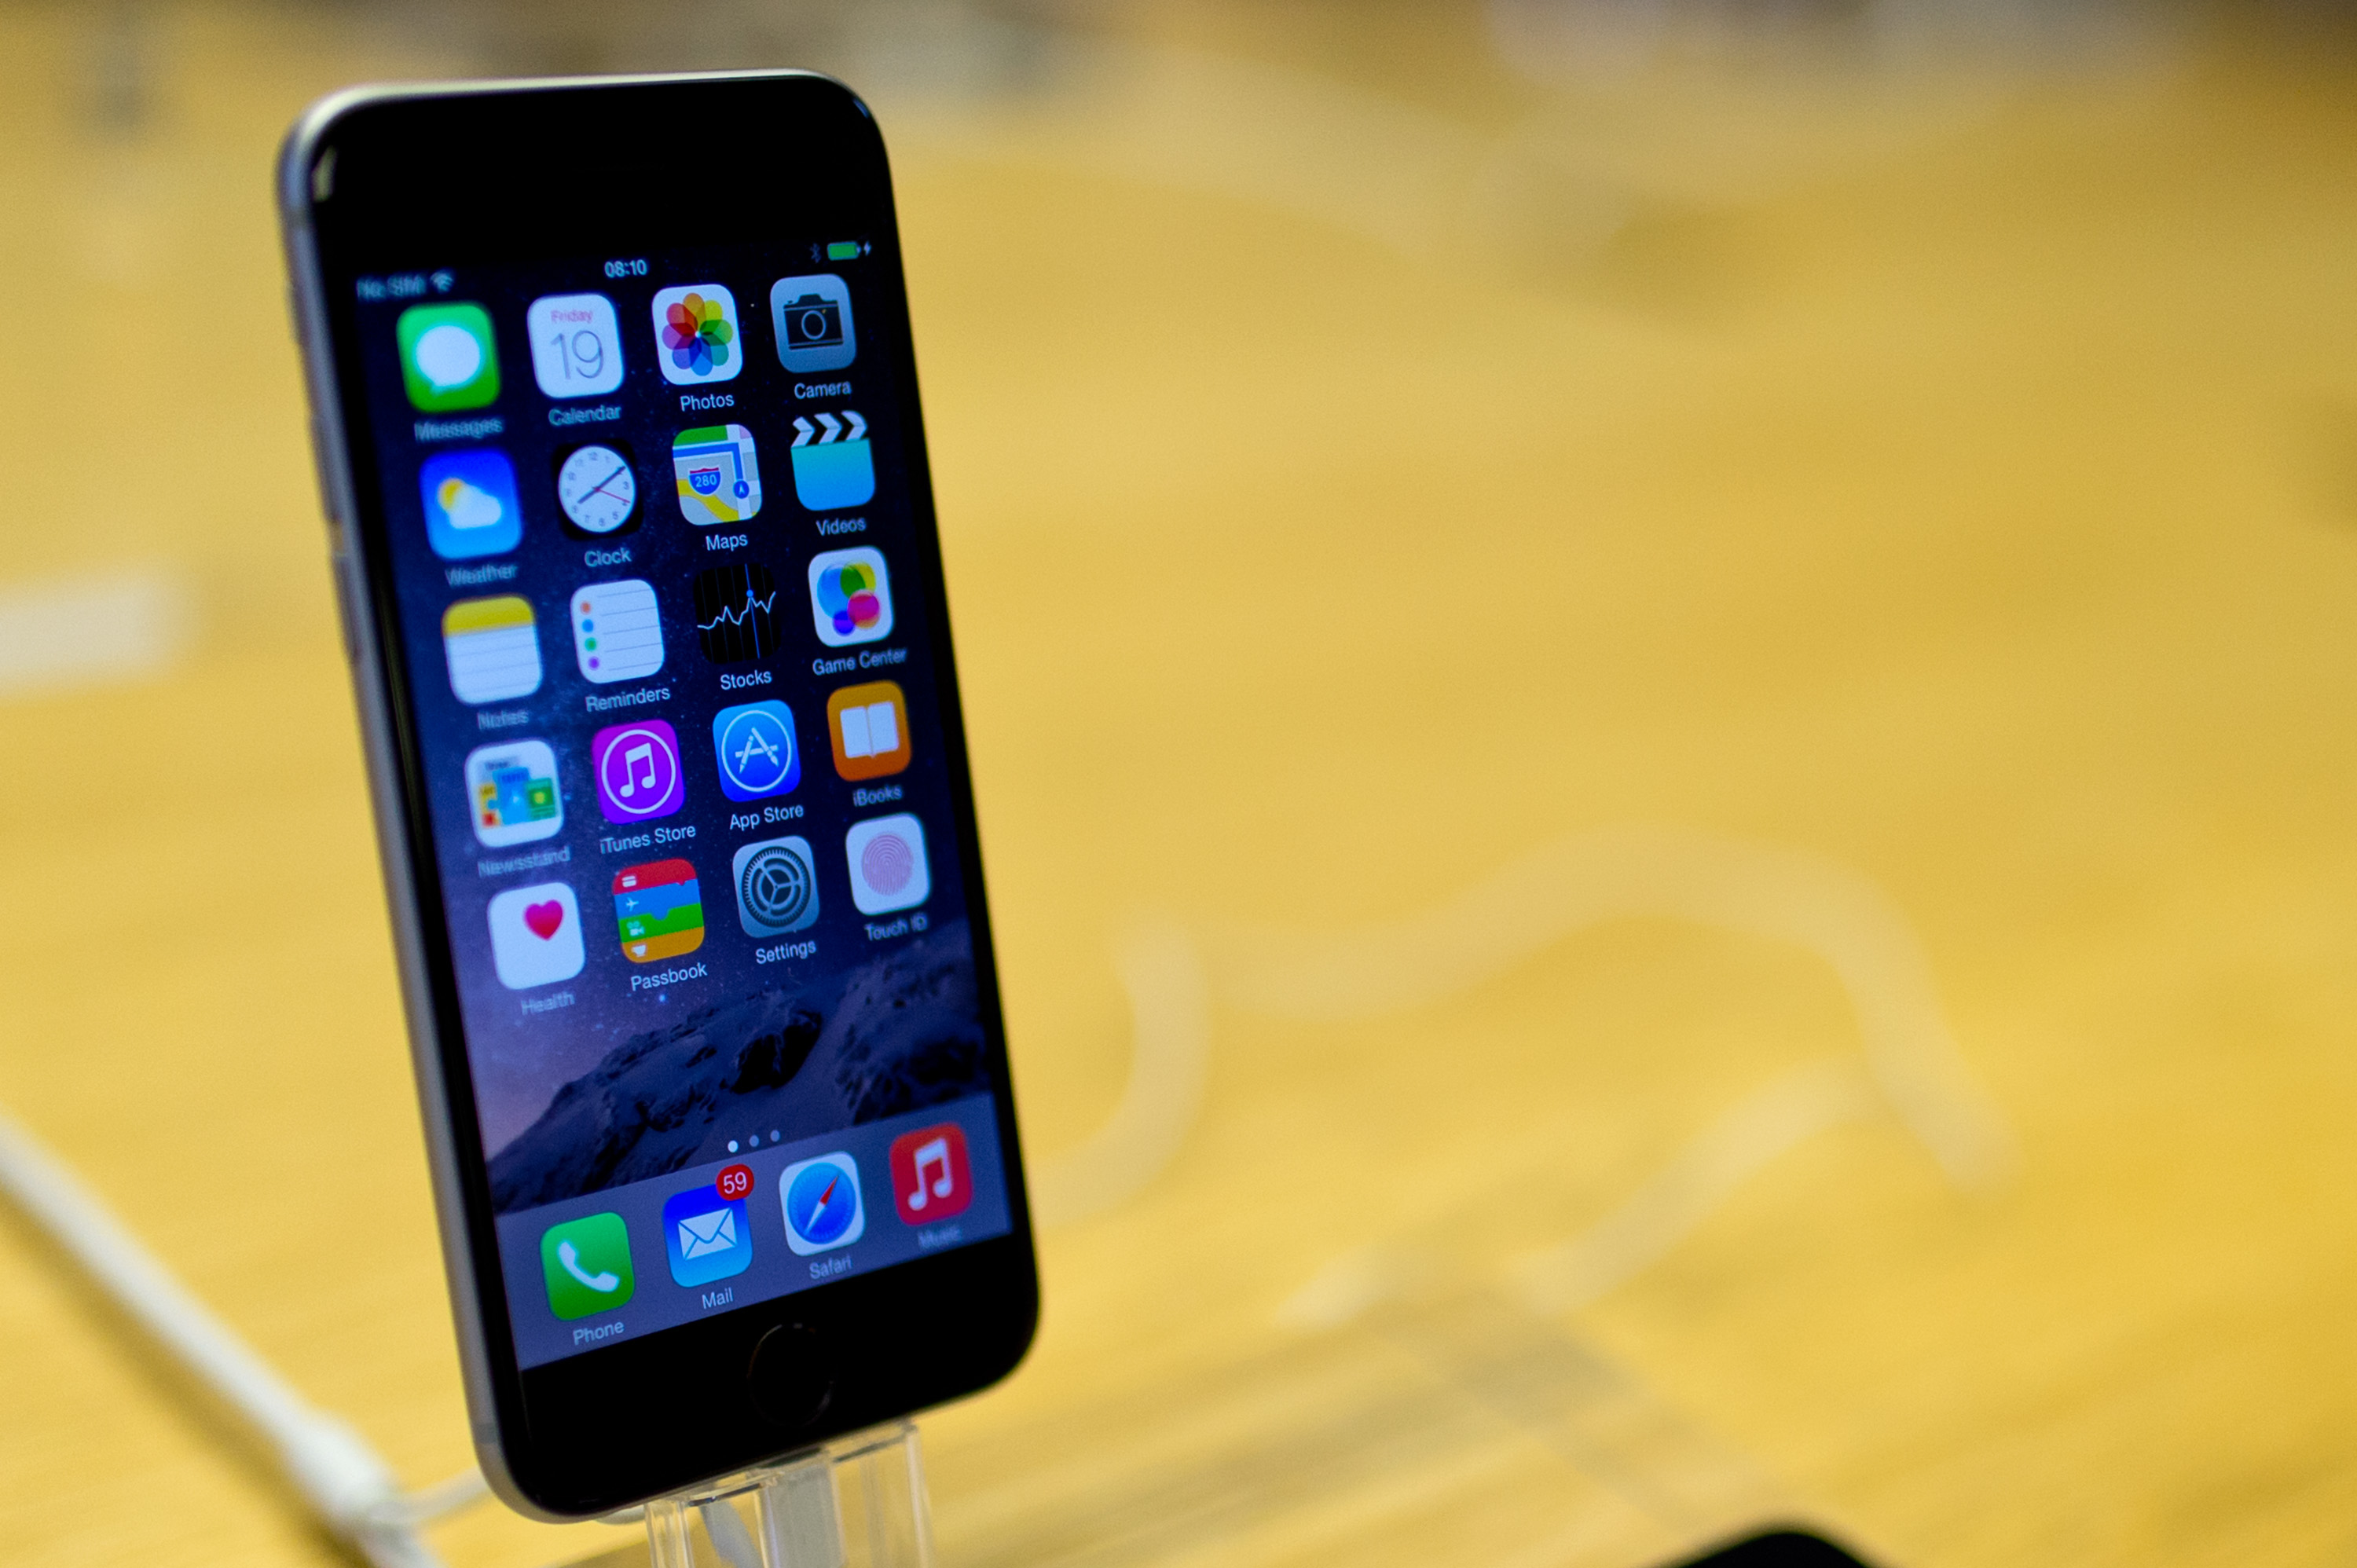 A general view of the iPhone 6 at Apples Covent Garden store launch on September 19, 2014 in London, England.